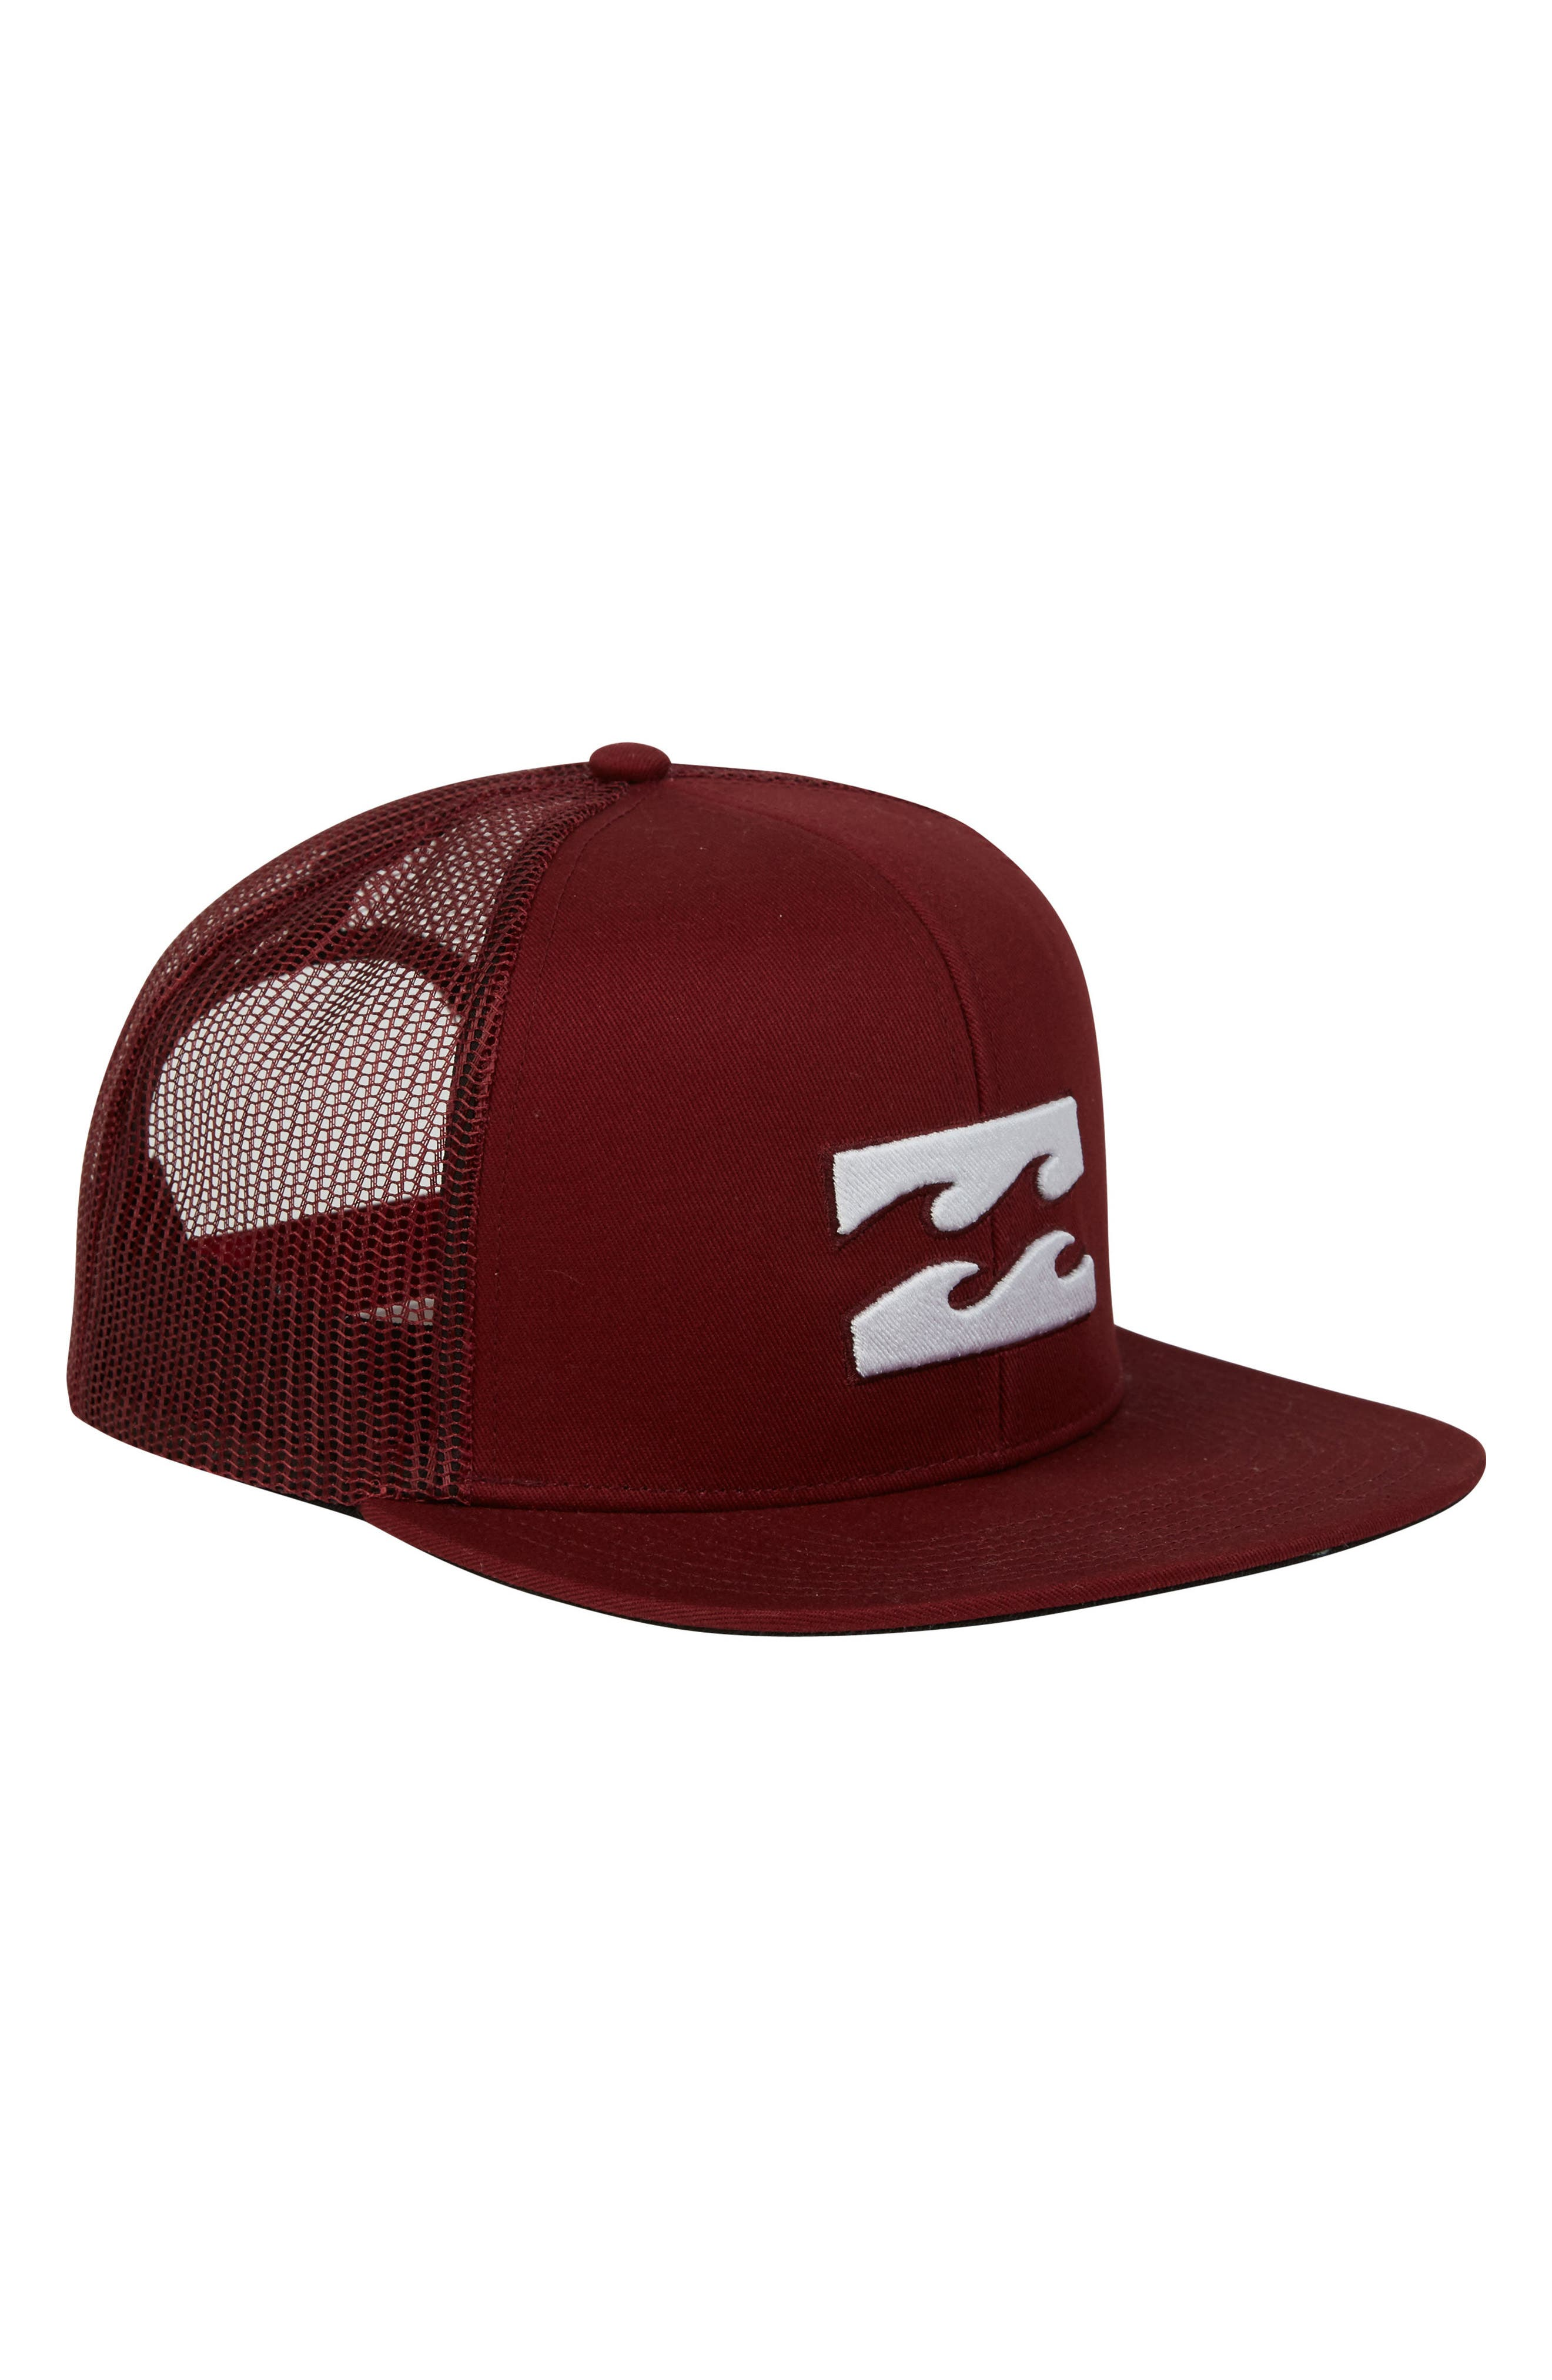 All Day Trucker Hat,                         Main,                         color, Brick